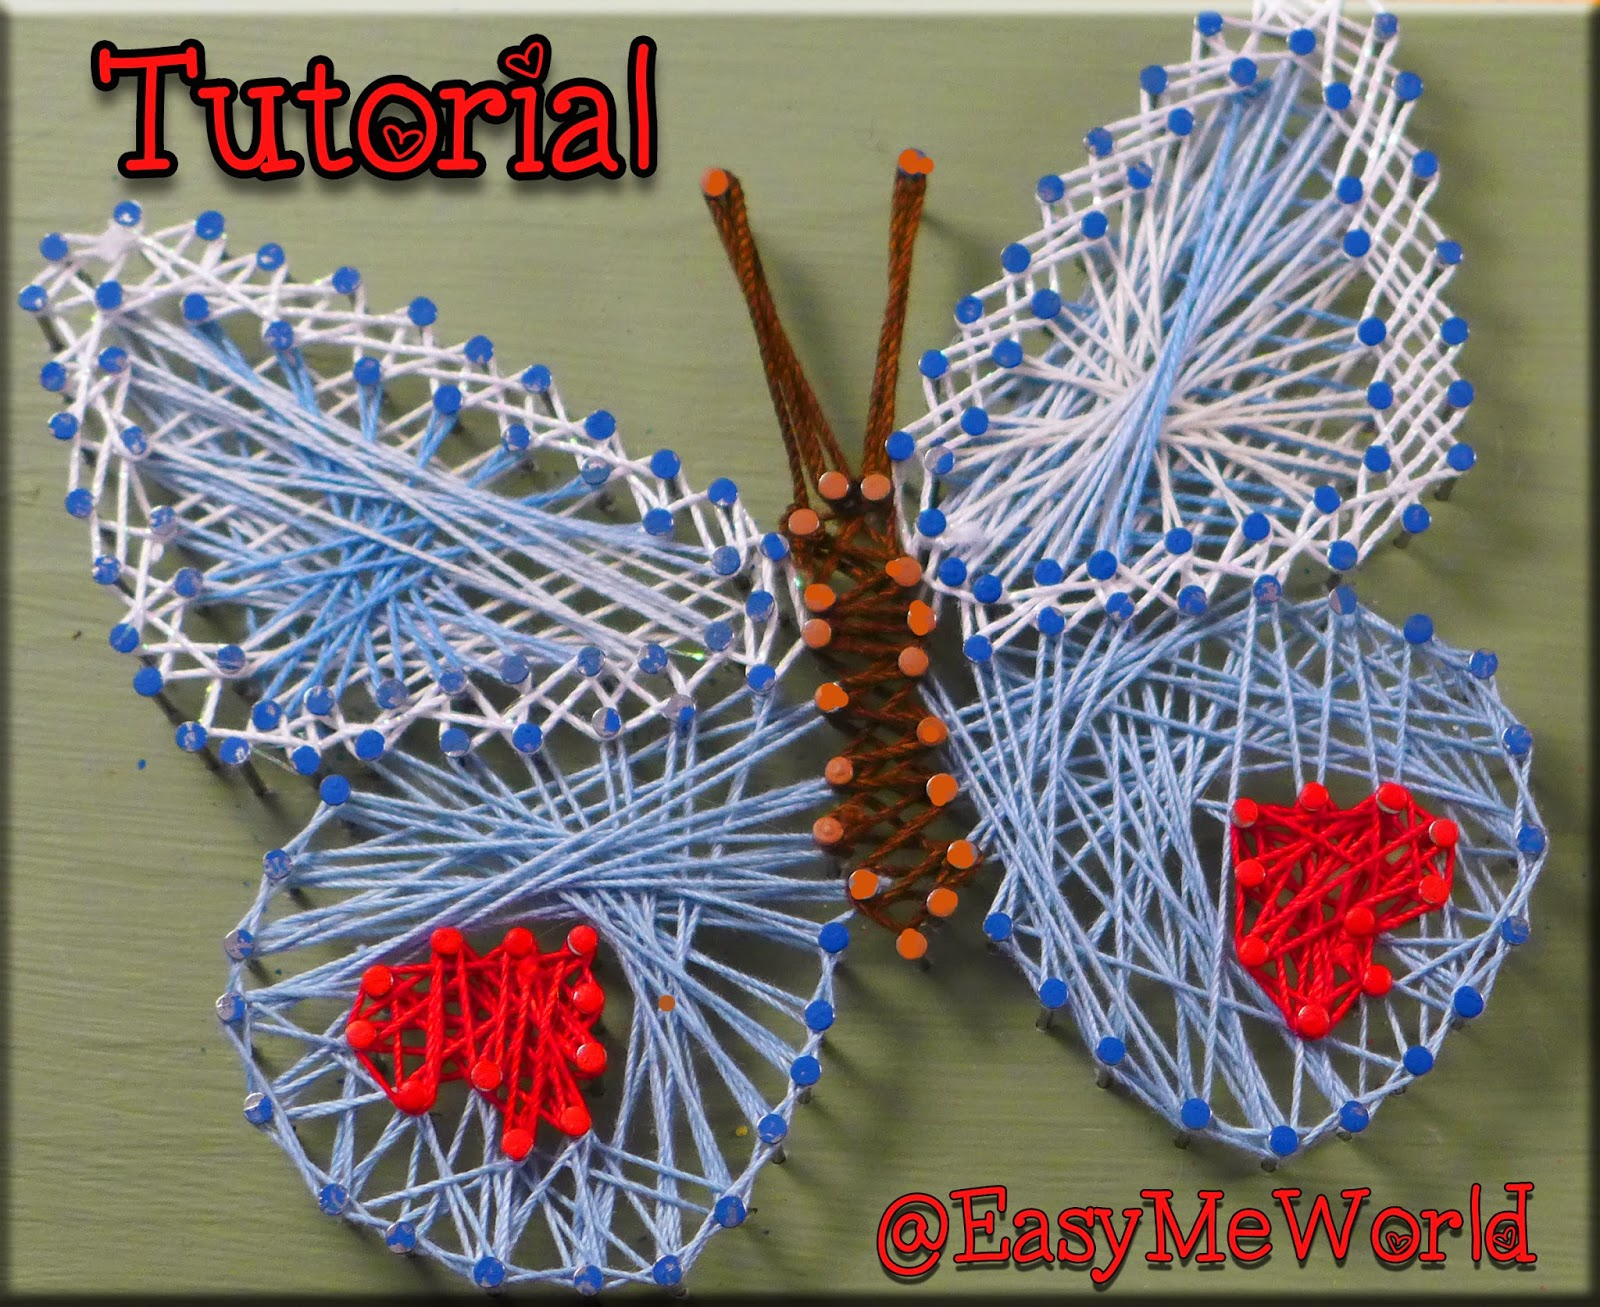 easymeworld string art tutorial an easy craft for kids. Black Bedroom Furniture Sets. Home Design Ideas